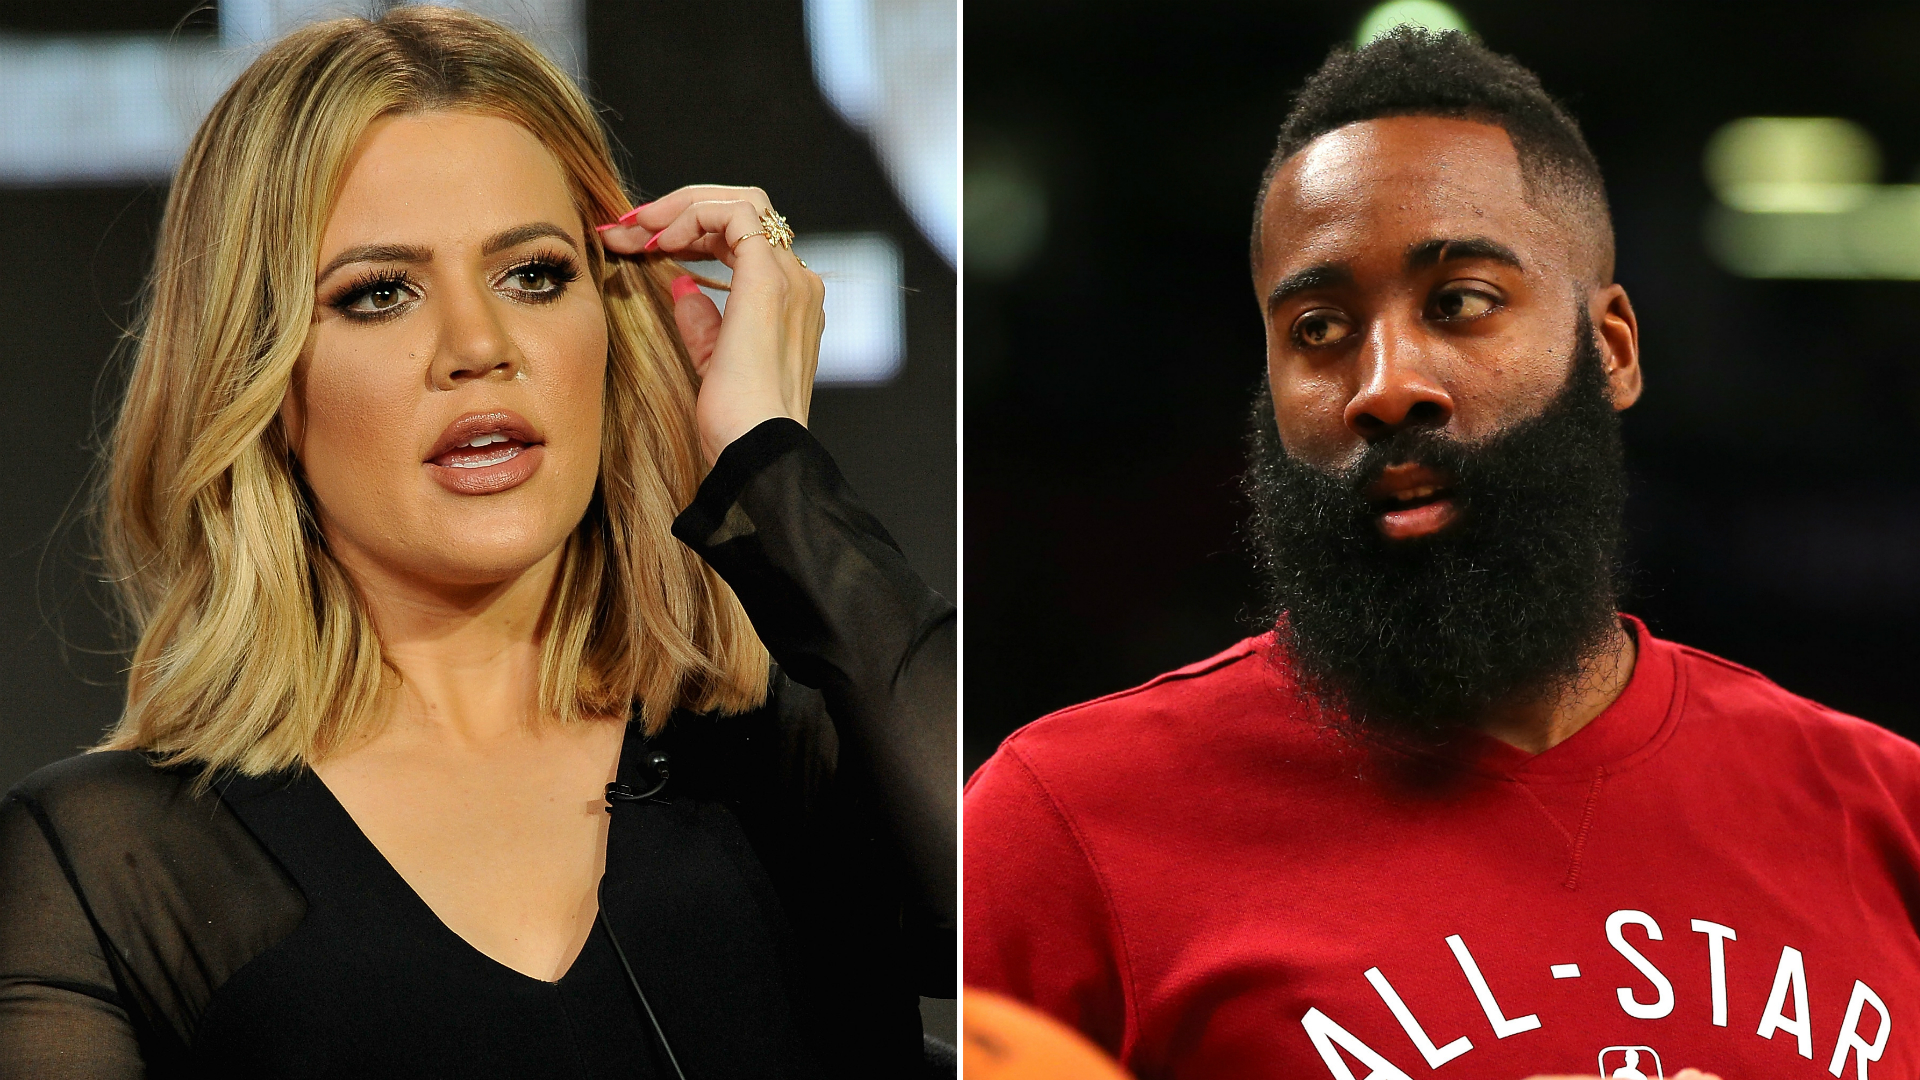 Khloé Kardashian Says James Harden Cheated on Her